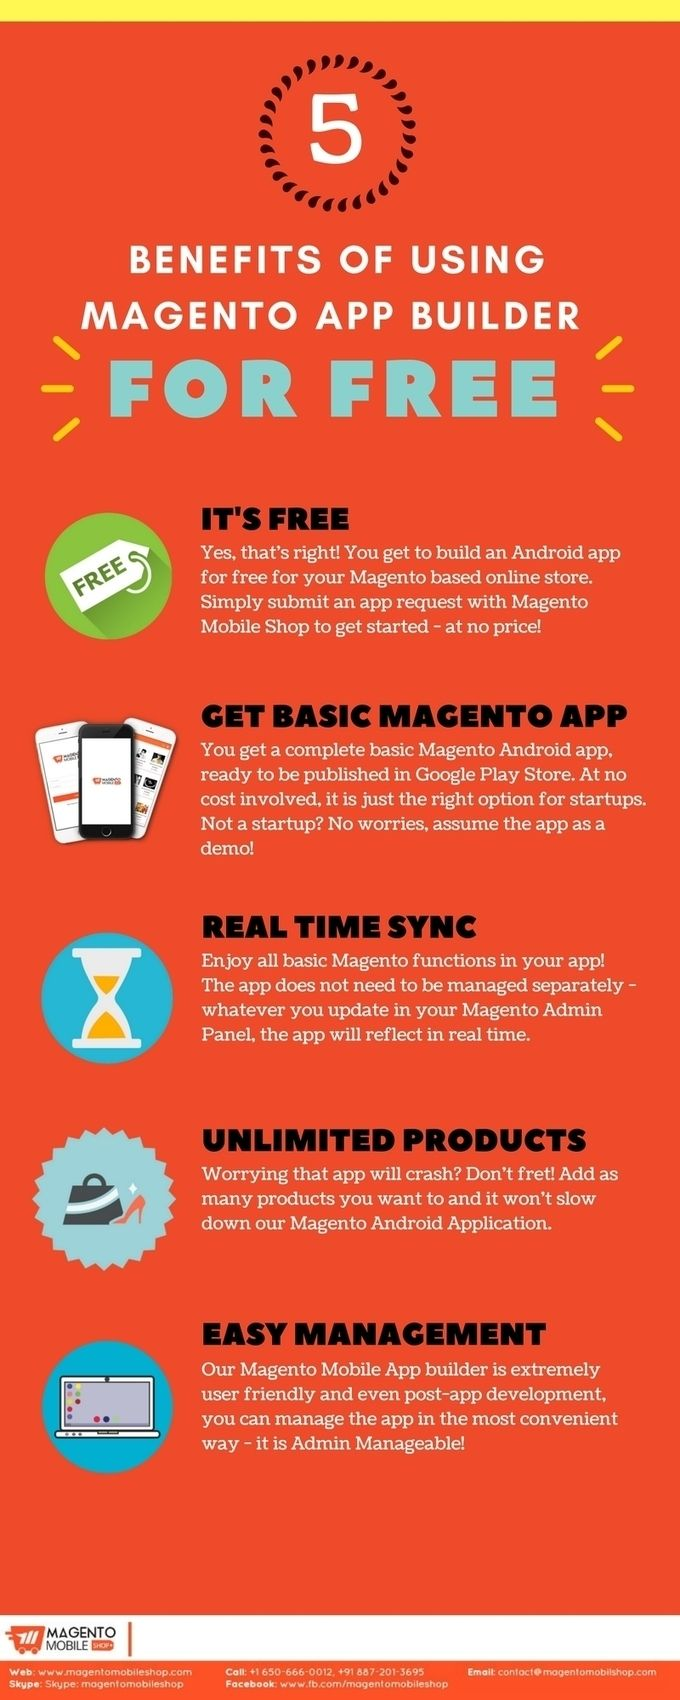 Benefits of Using Magento Mobile App Builder (With images